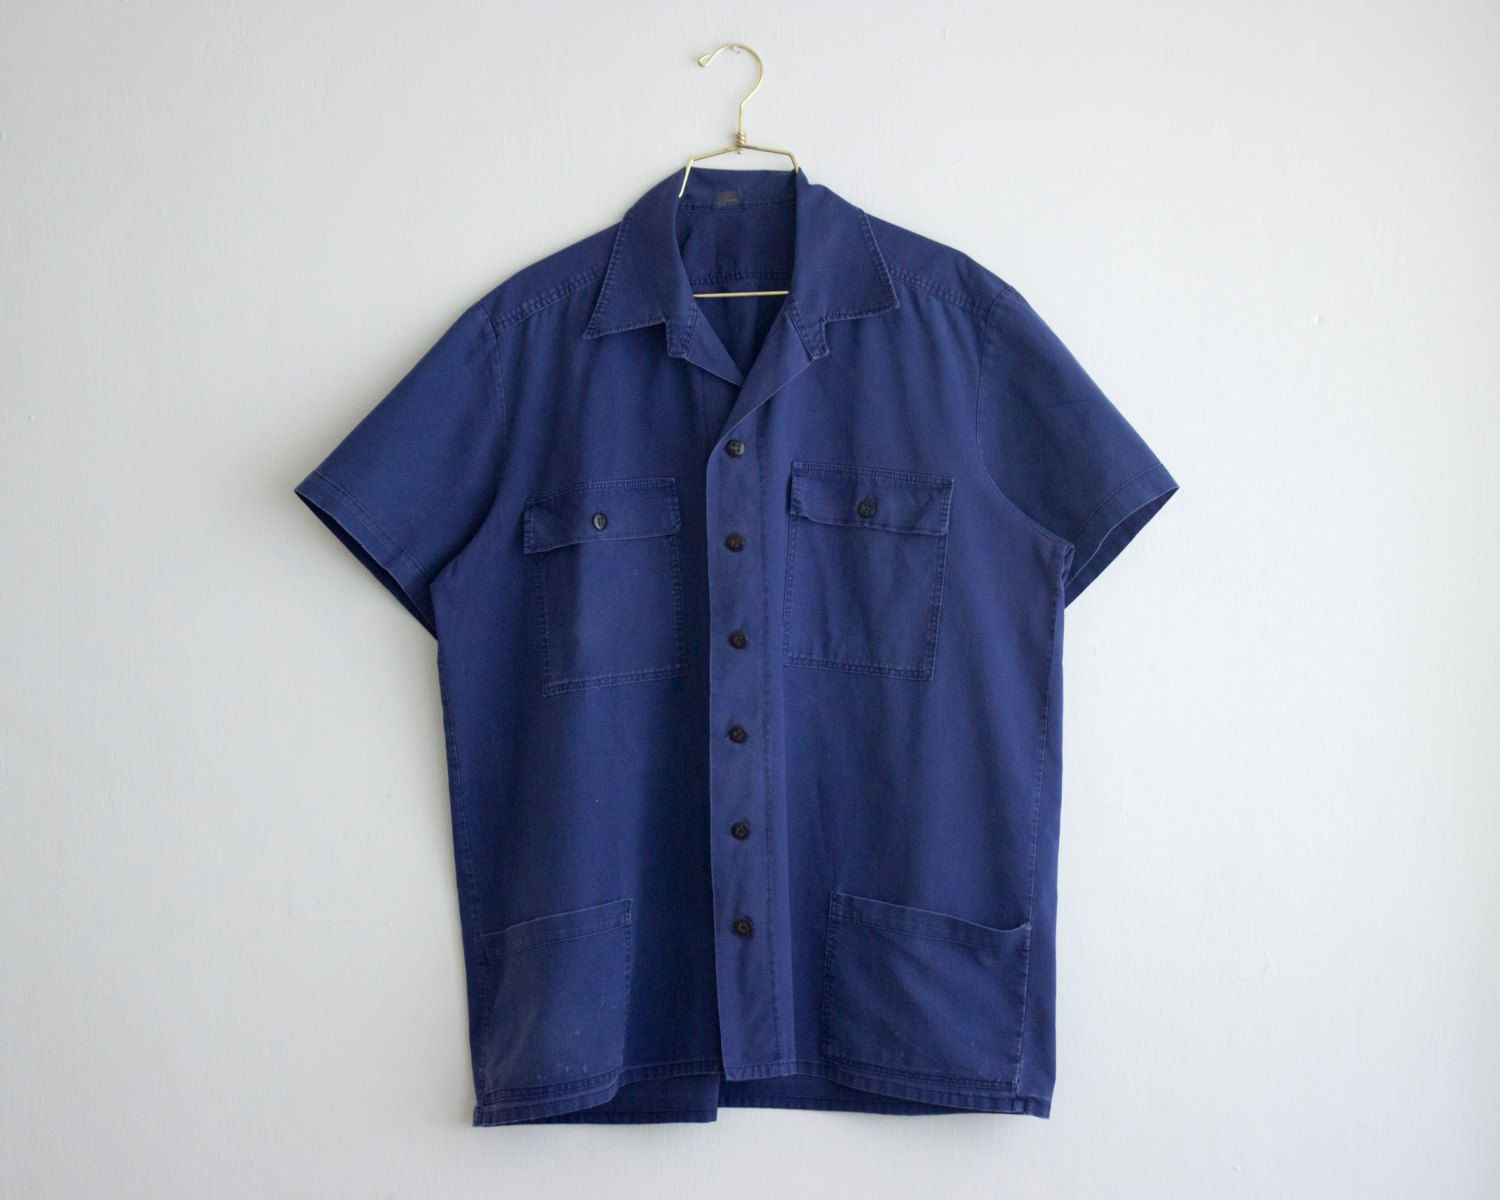 70 S French Workwear Shirt Vintage Short Sleeve Navy Blue Shirt Industrial Work Shirt For Man Workwear Shirts Vintage Clothes Shop Vintage Shorts